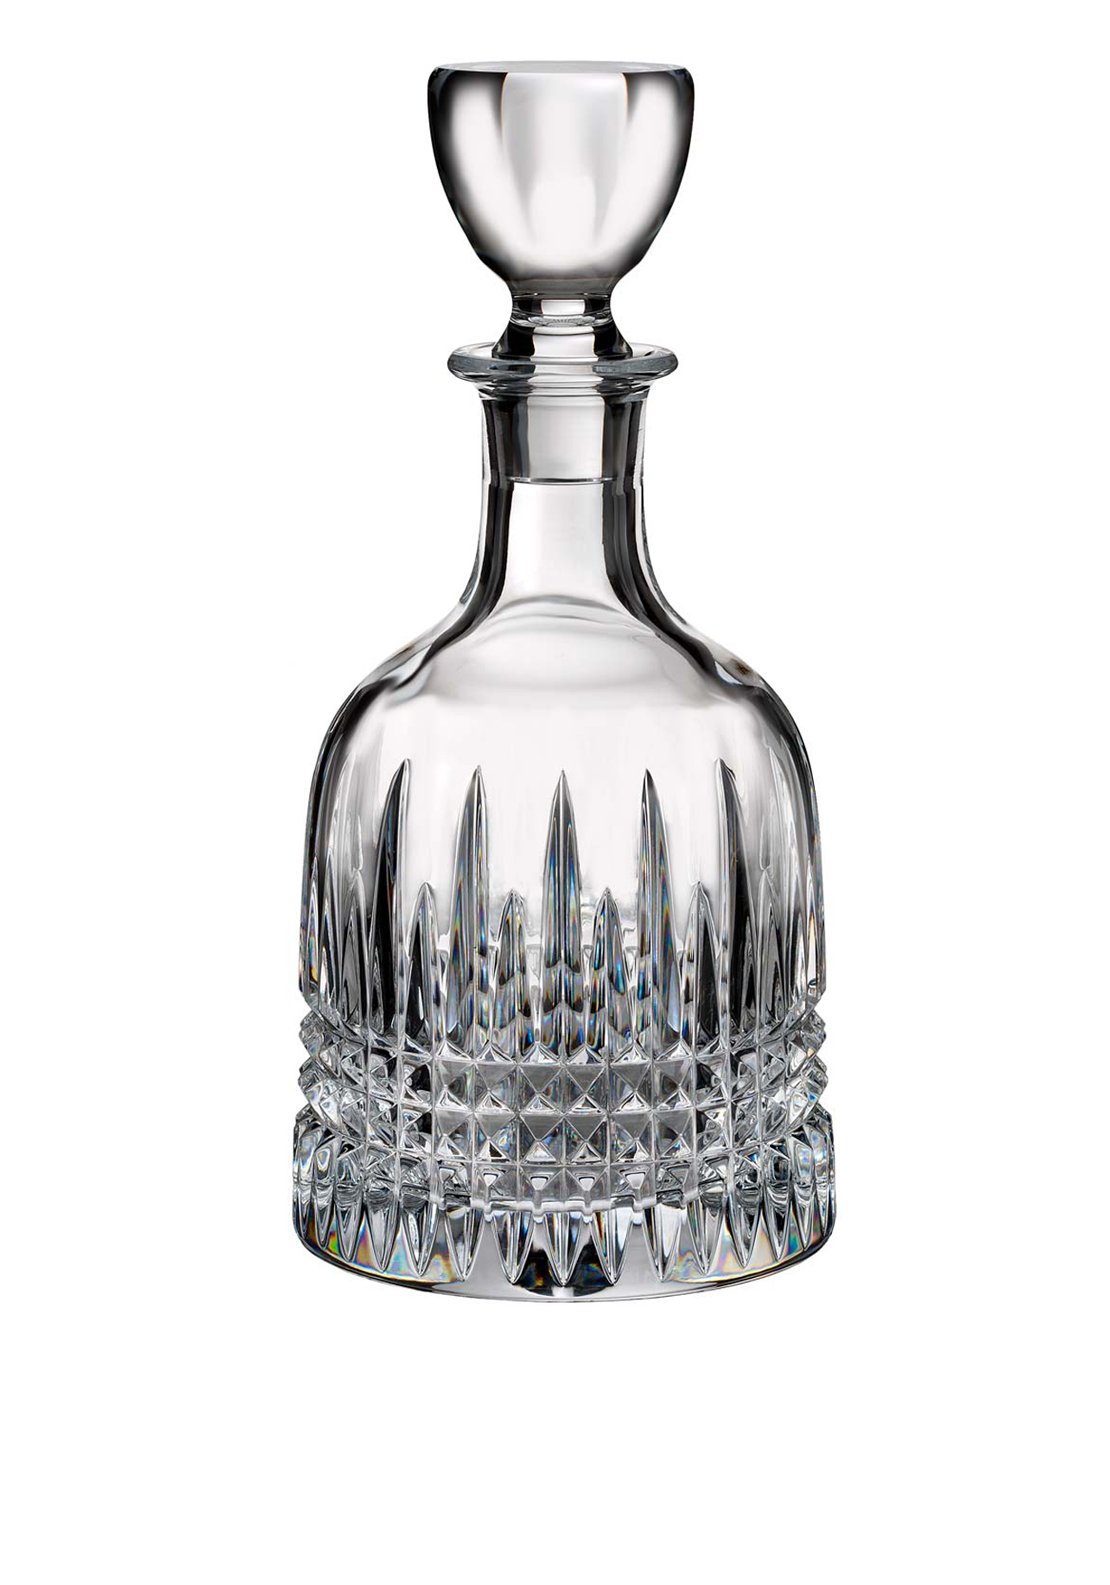 Waterford Crystal Lismore Classic Bottle Decanter